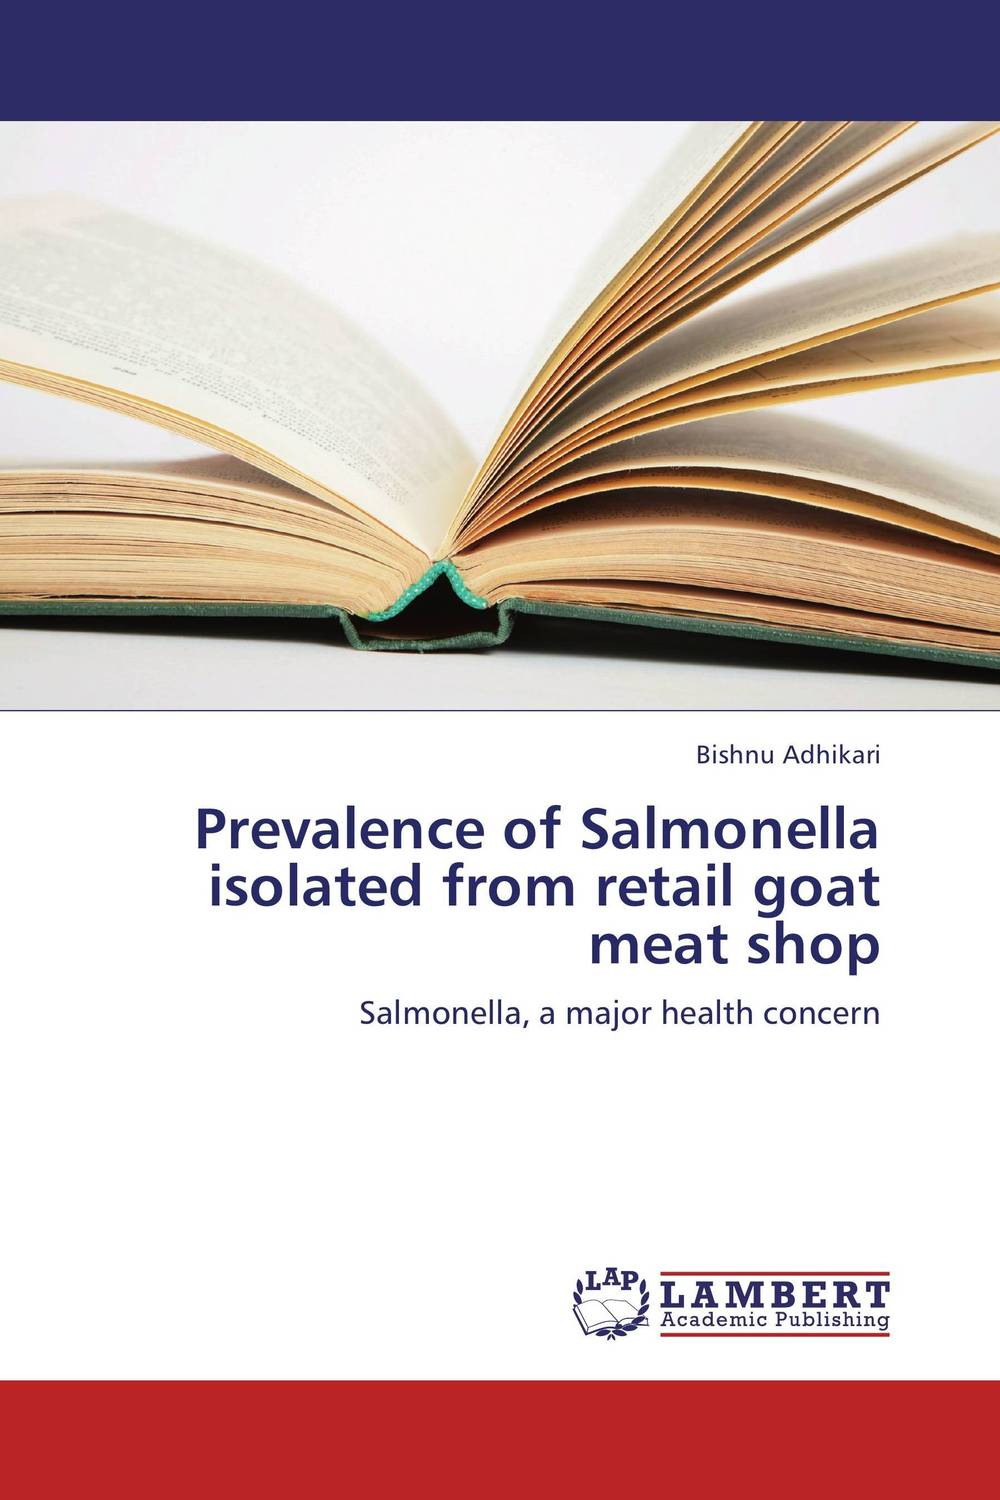 Prevalence of Salmonella isolated from retail goat meat shop thermo operated water valves can be used in food processing equipments biomass boilers and hydraulic systems